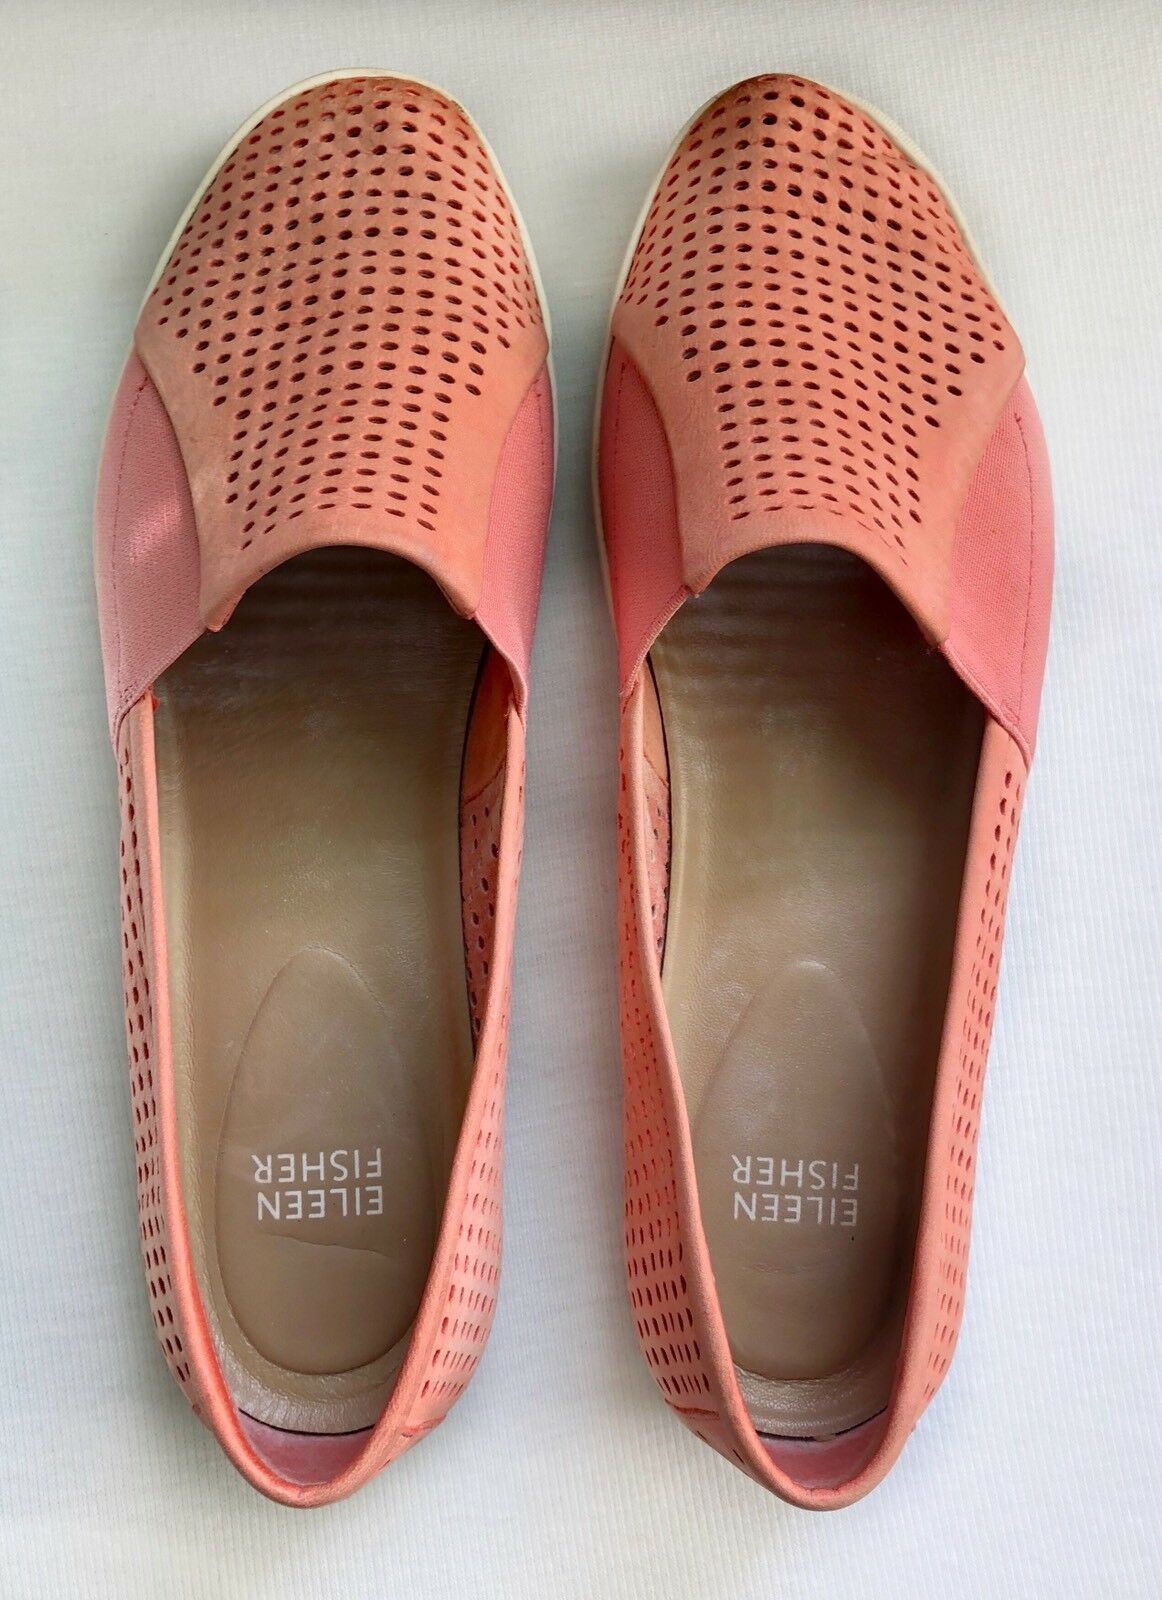 Eileen Fisher Suede Leder Perforated Slip On Sneakers Größe 9.5